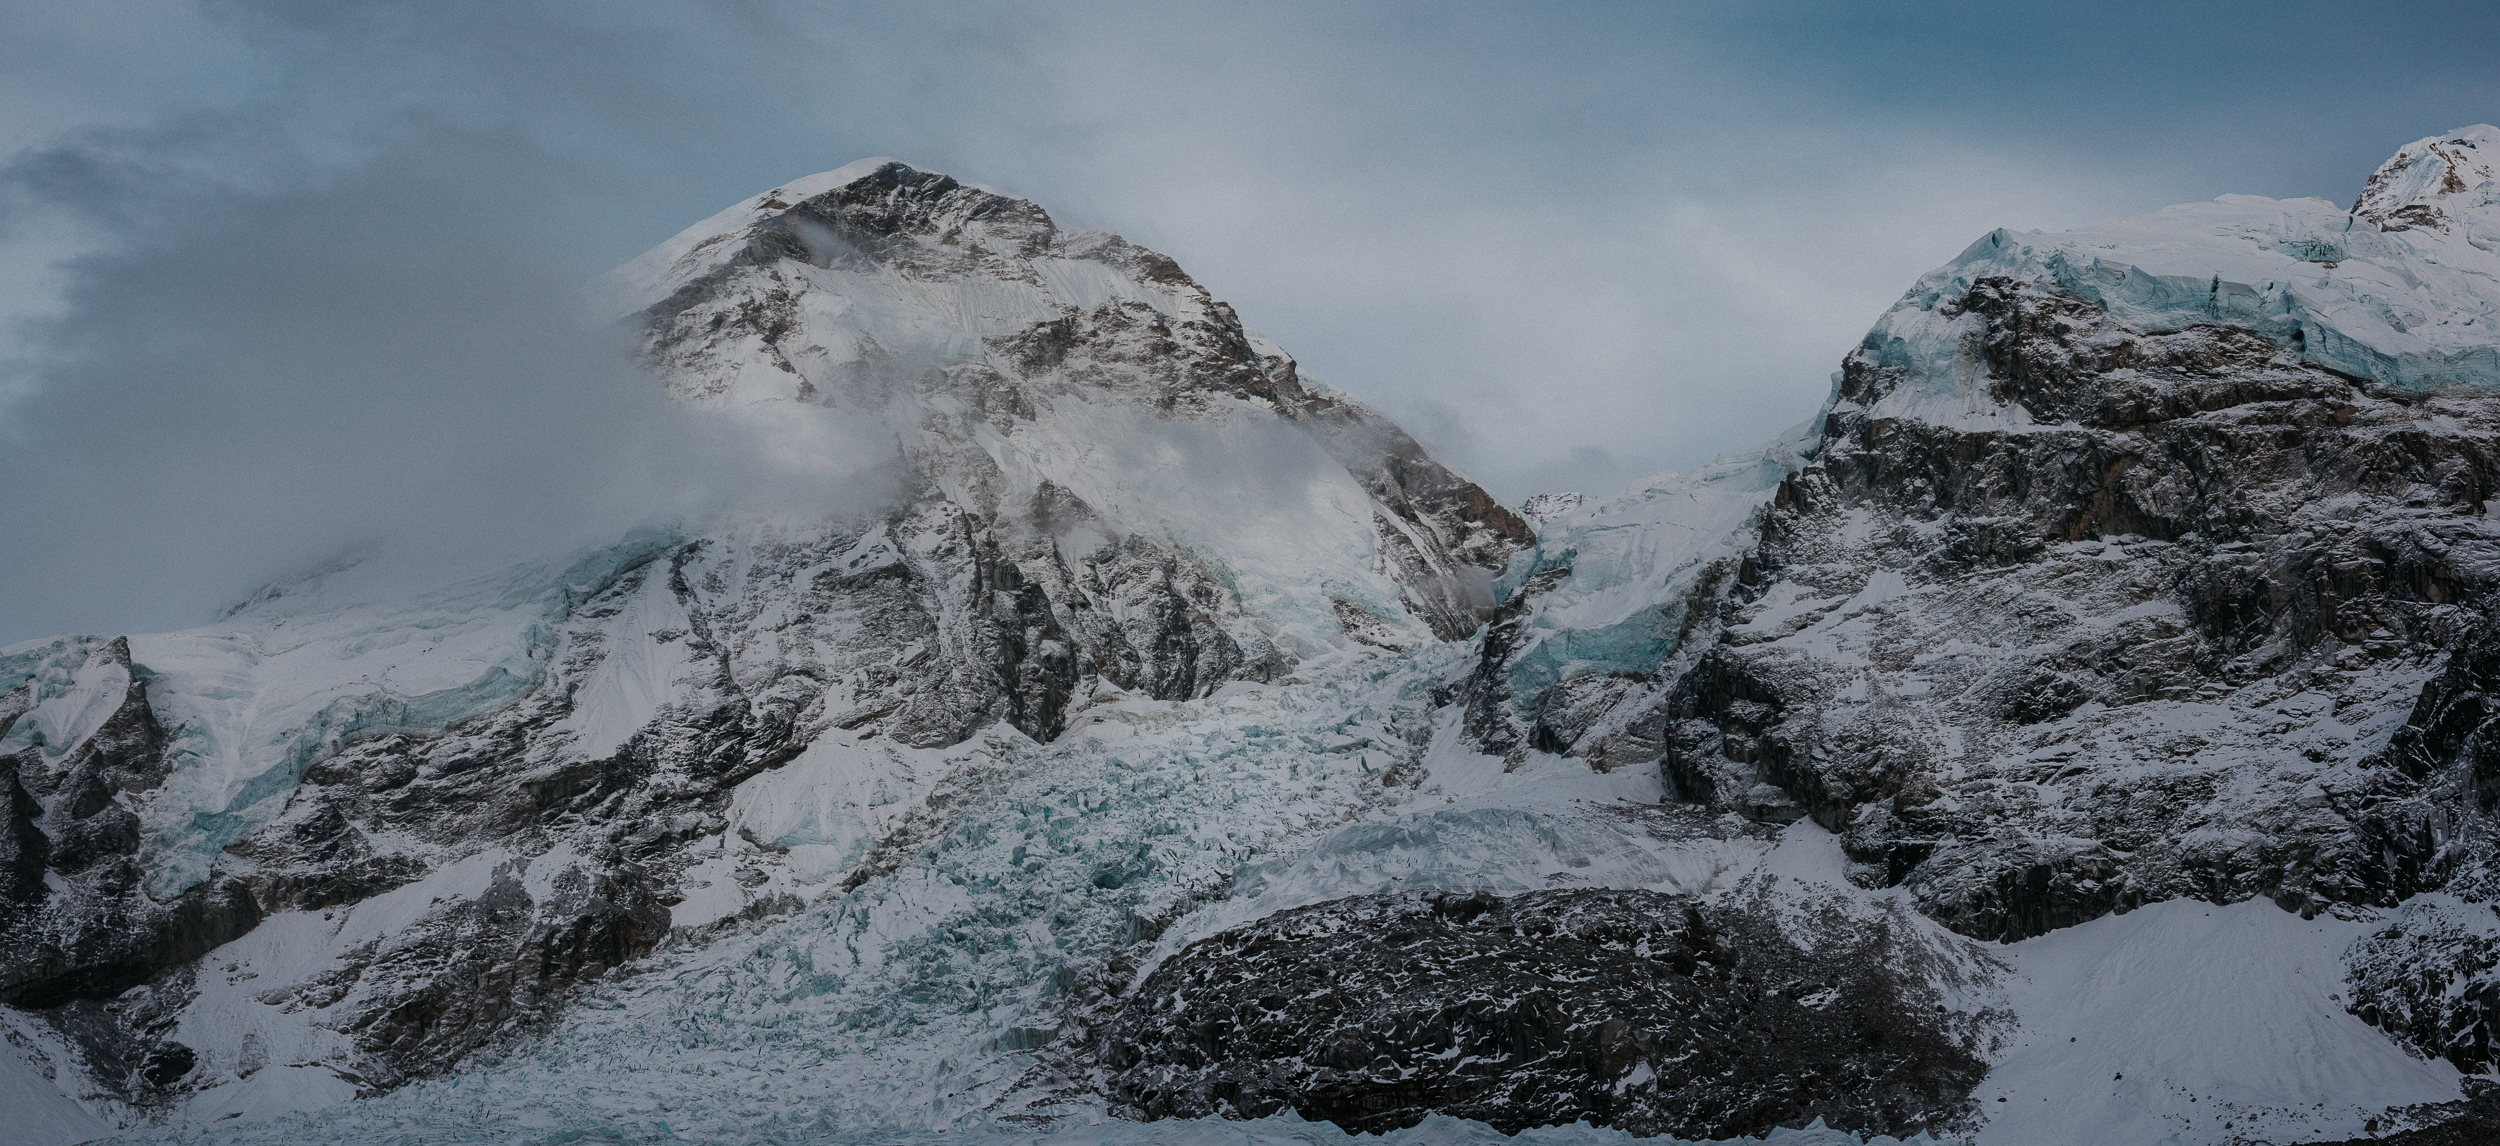 Nepal_EverestBaseCamp_2019_TaraShupe_Photography_DSC_4277-Pano.jpg